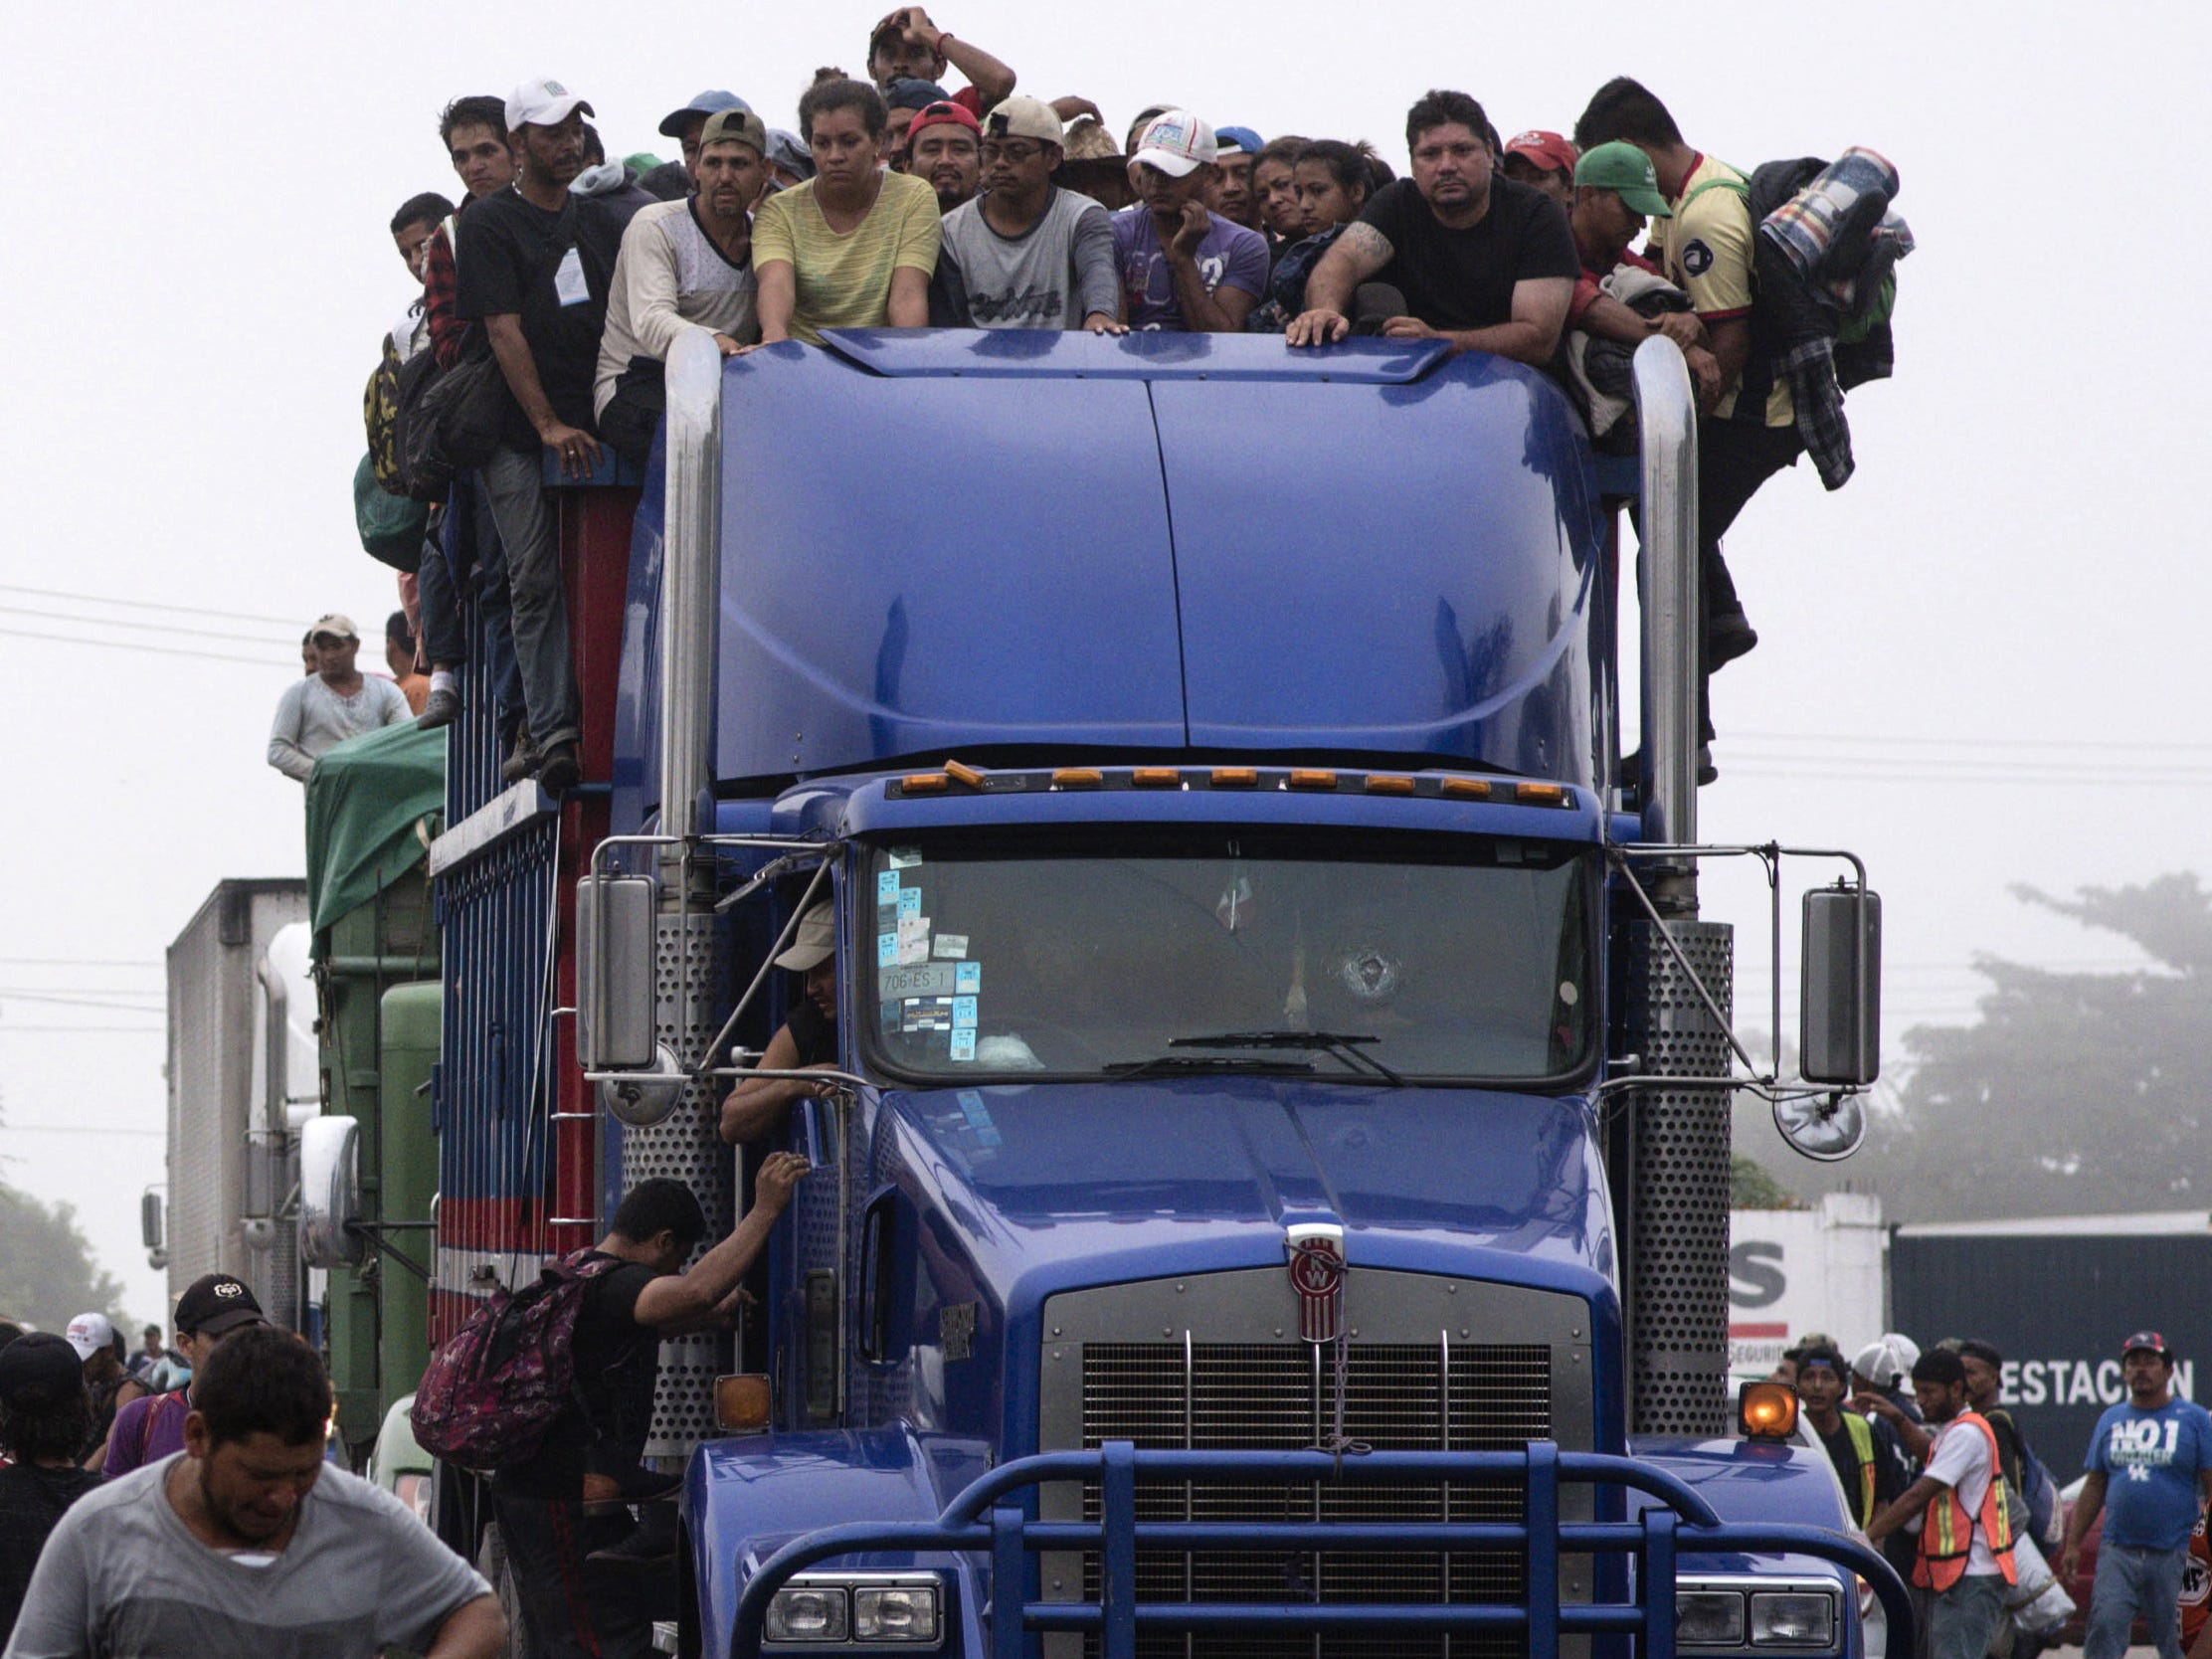 Members of the migrant caravan continue to make their way from Ciudad Isla, in the state of Veracruz, to the state of Puebla, in Mexico.